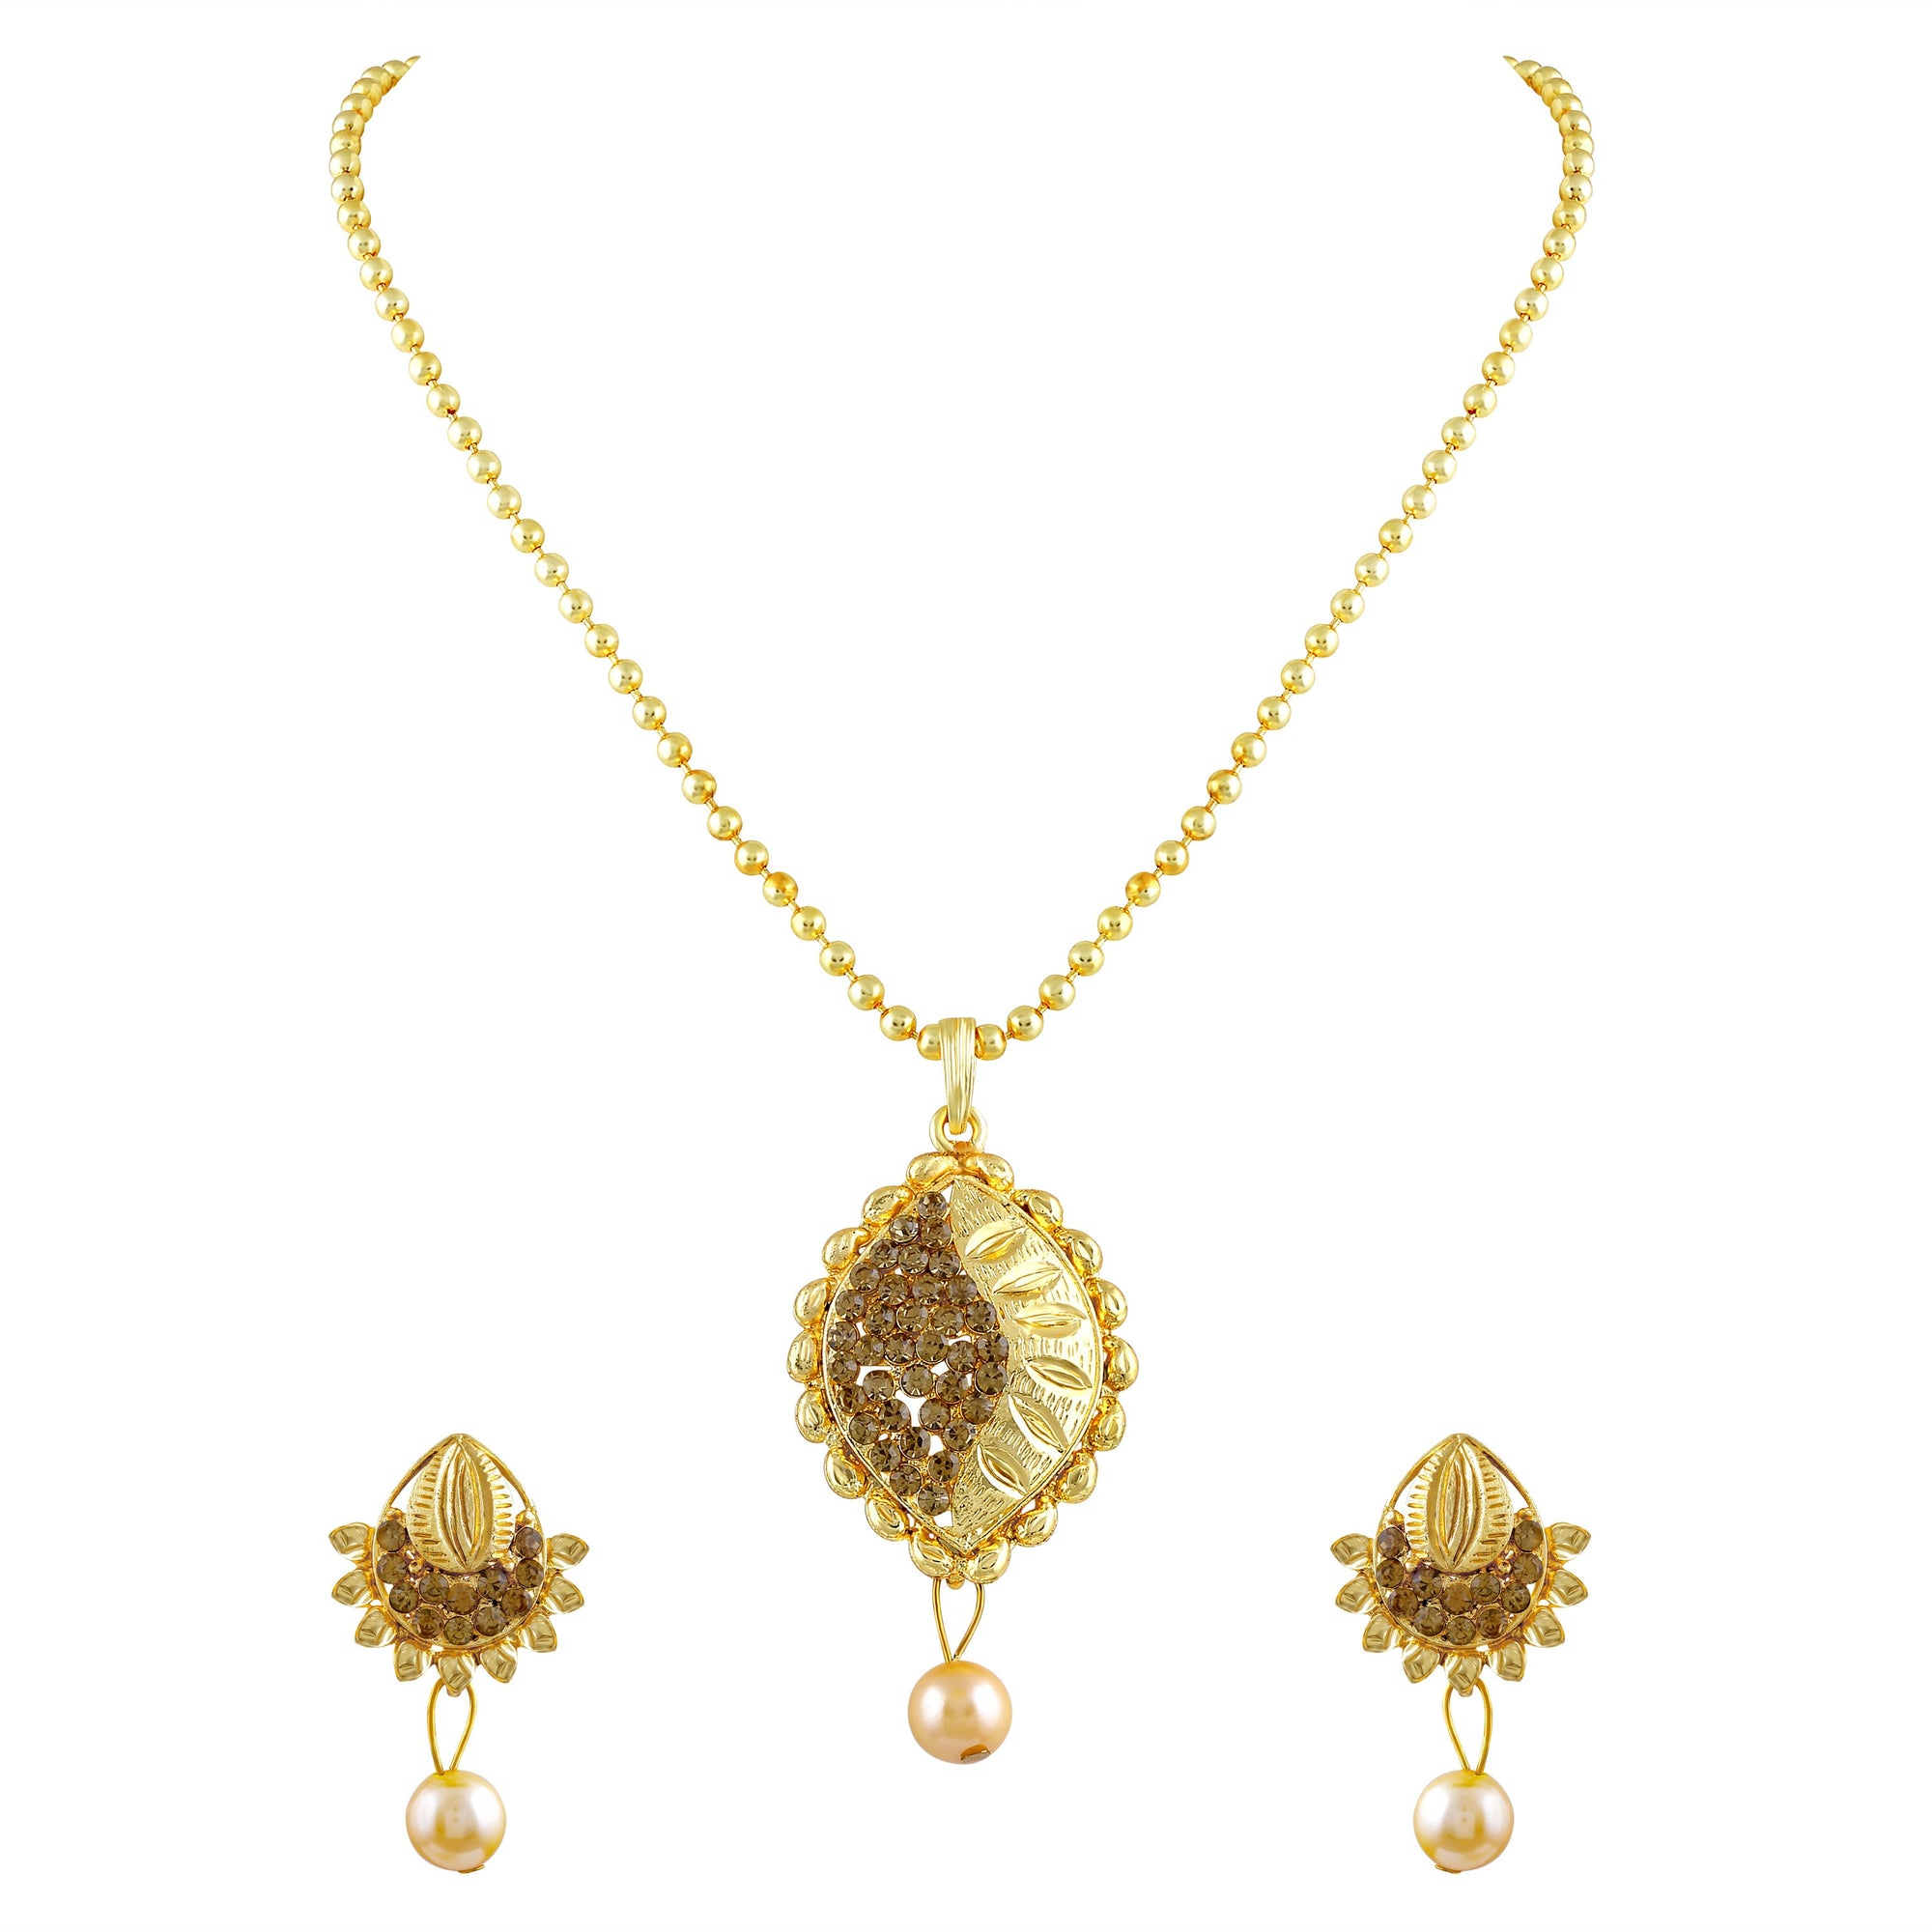 Asmitta Jewellery Alloy Jewel Set (Gold) -PS167